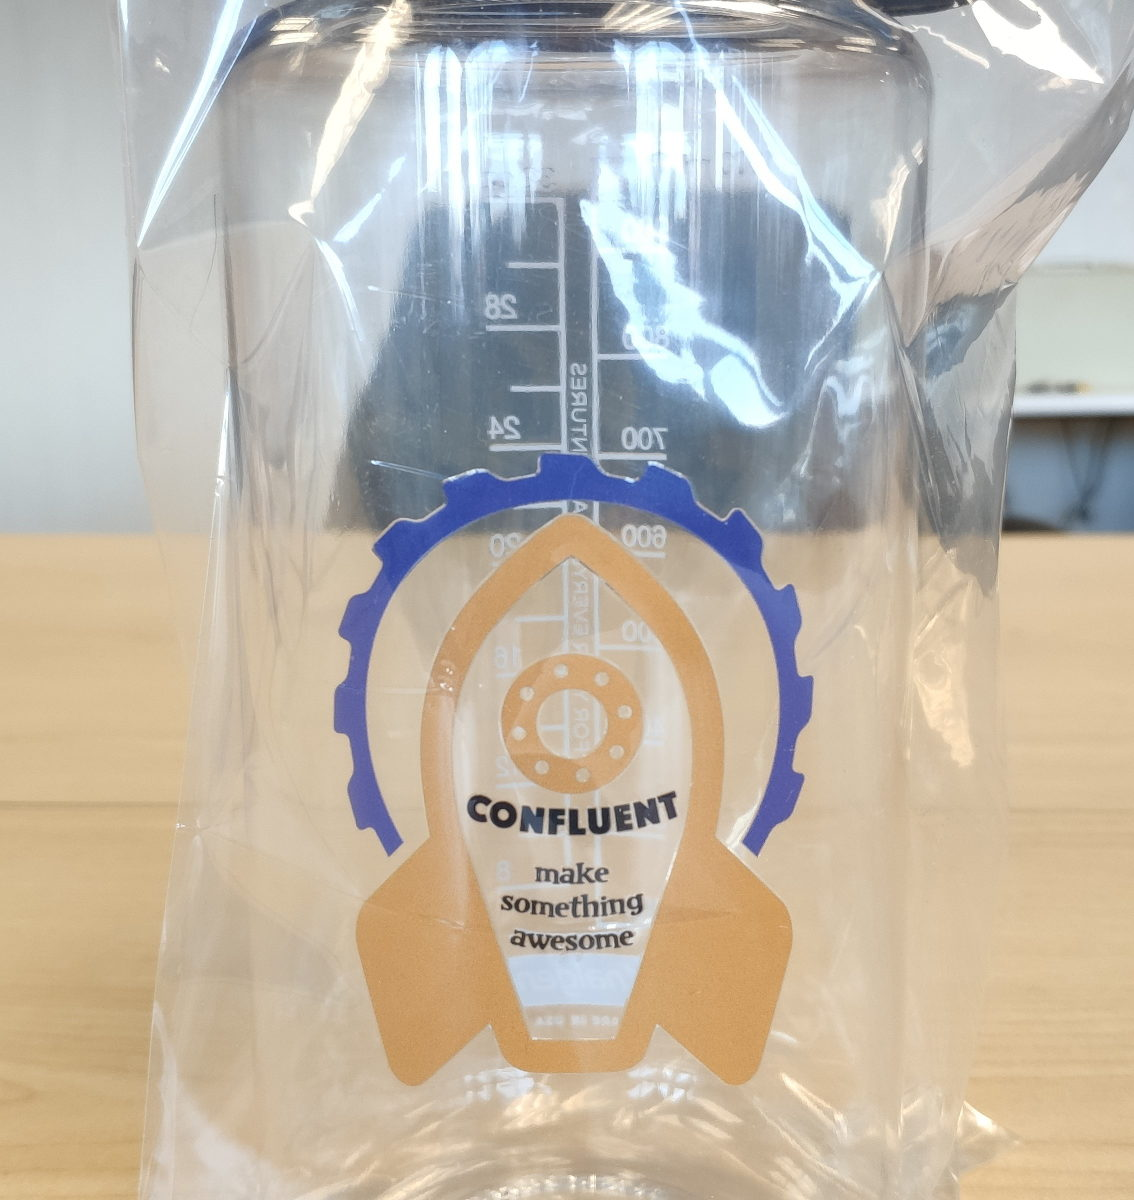 """Nalgene bottle printed with a rocket design that says """"Confluent"""" and """"make something awesome"""""""